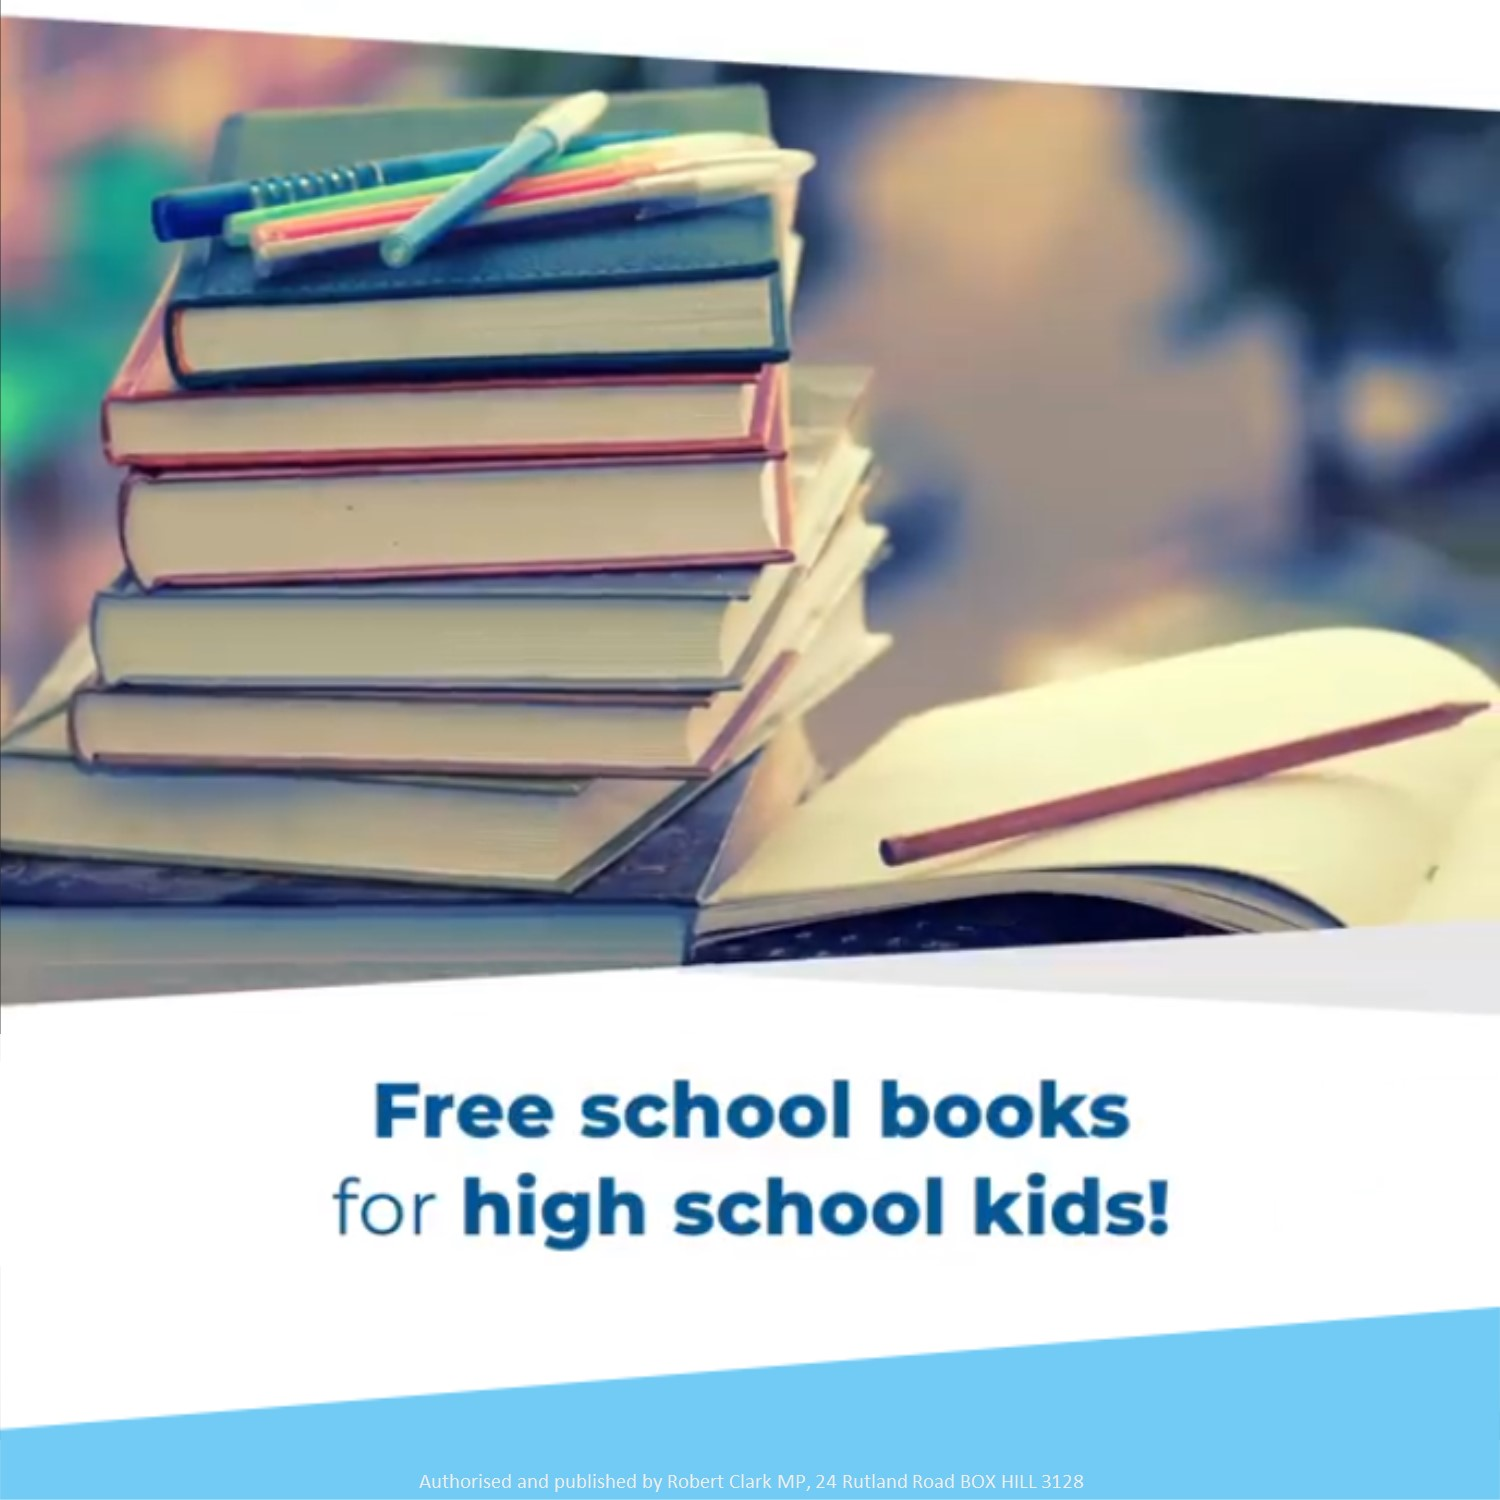 Free school books for high school kids